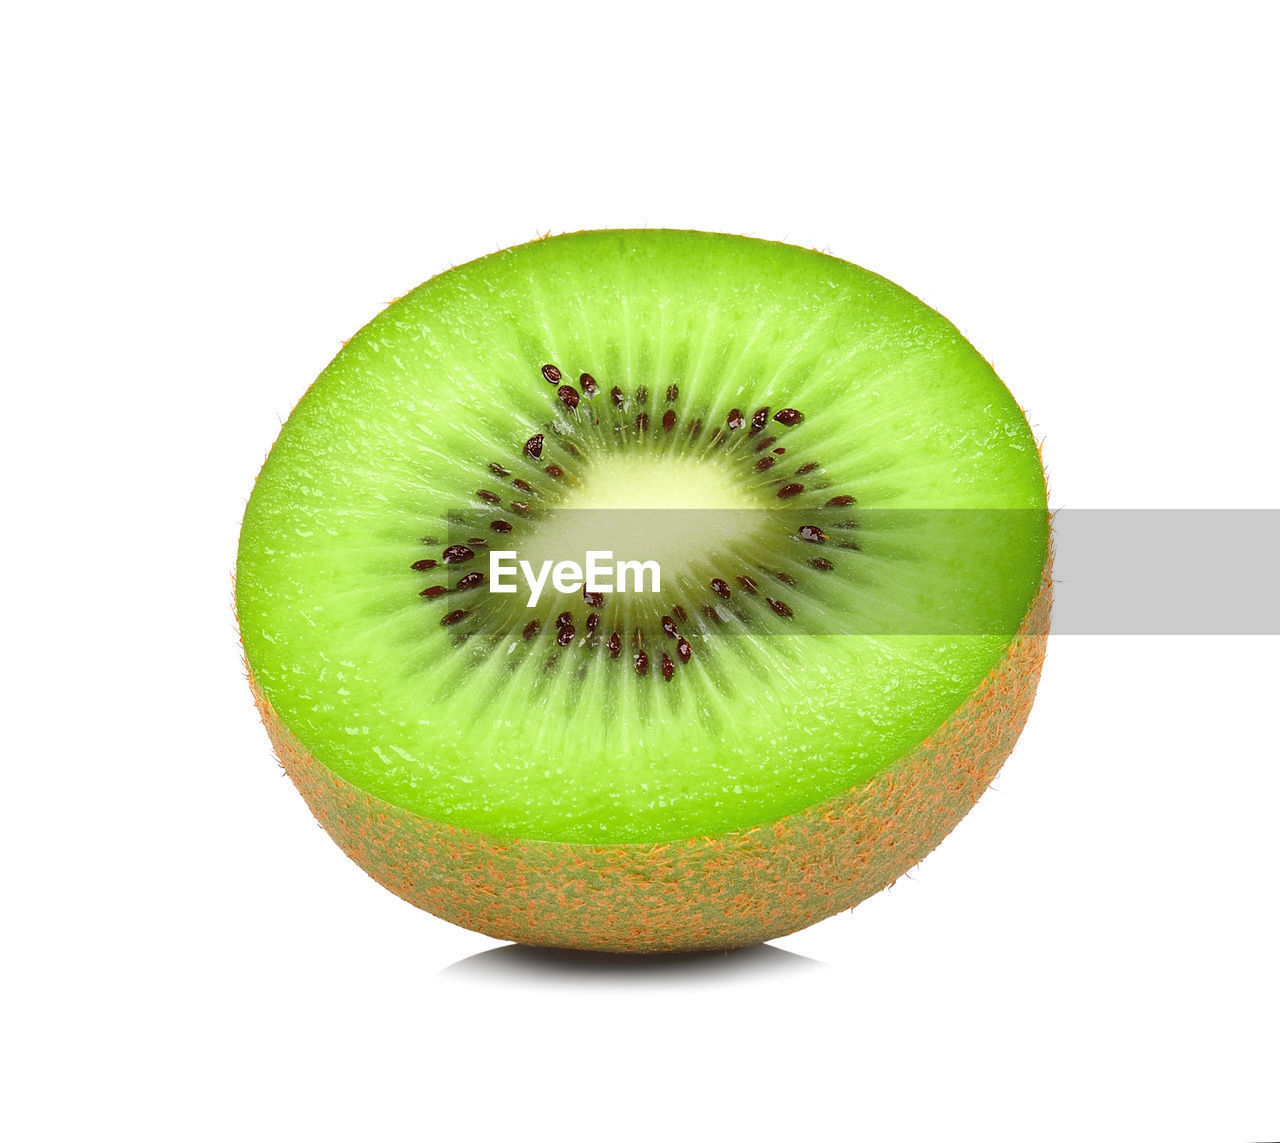 fruit, healthy eating, food and drink, food, studio shot, wellbeing, green color, kiwi, freshness, white background, slice, cut out, close-up, indoors, kiwi - fruit, still life, no people, single object, cross section, seed, ripe, temptation